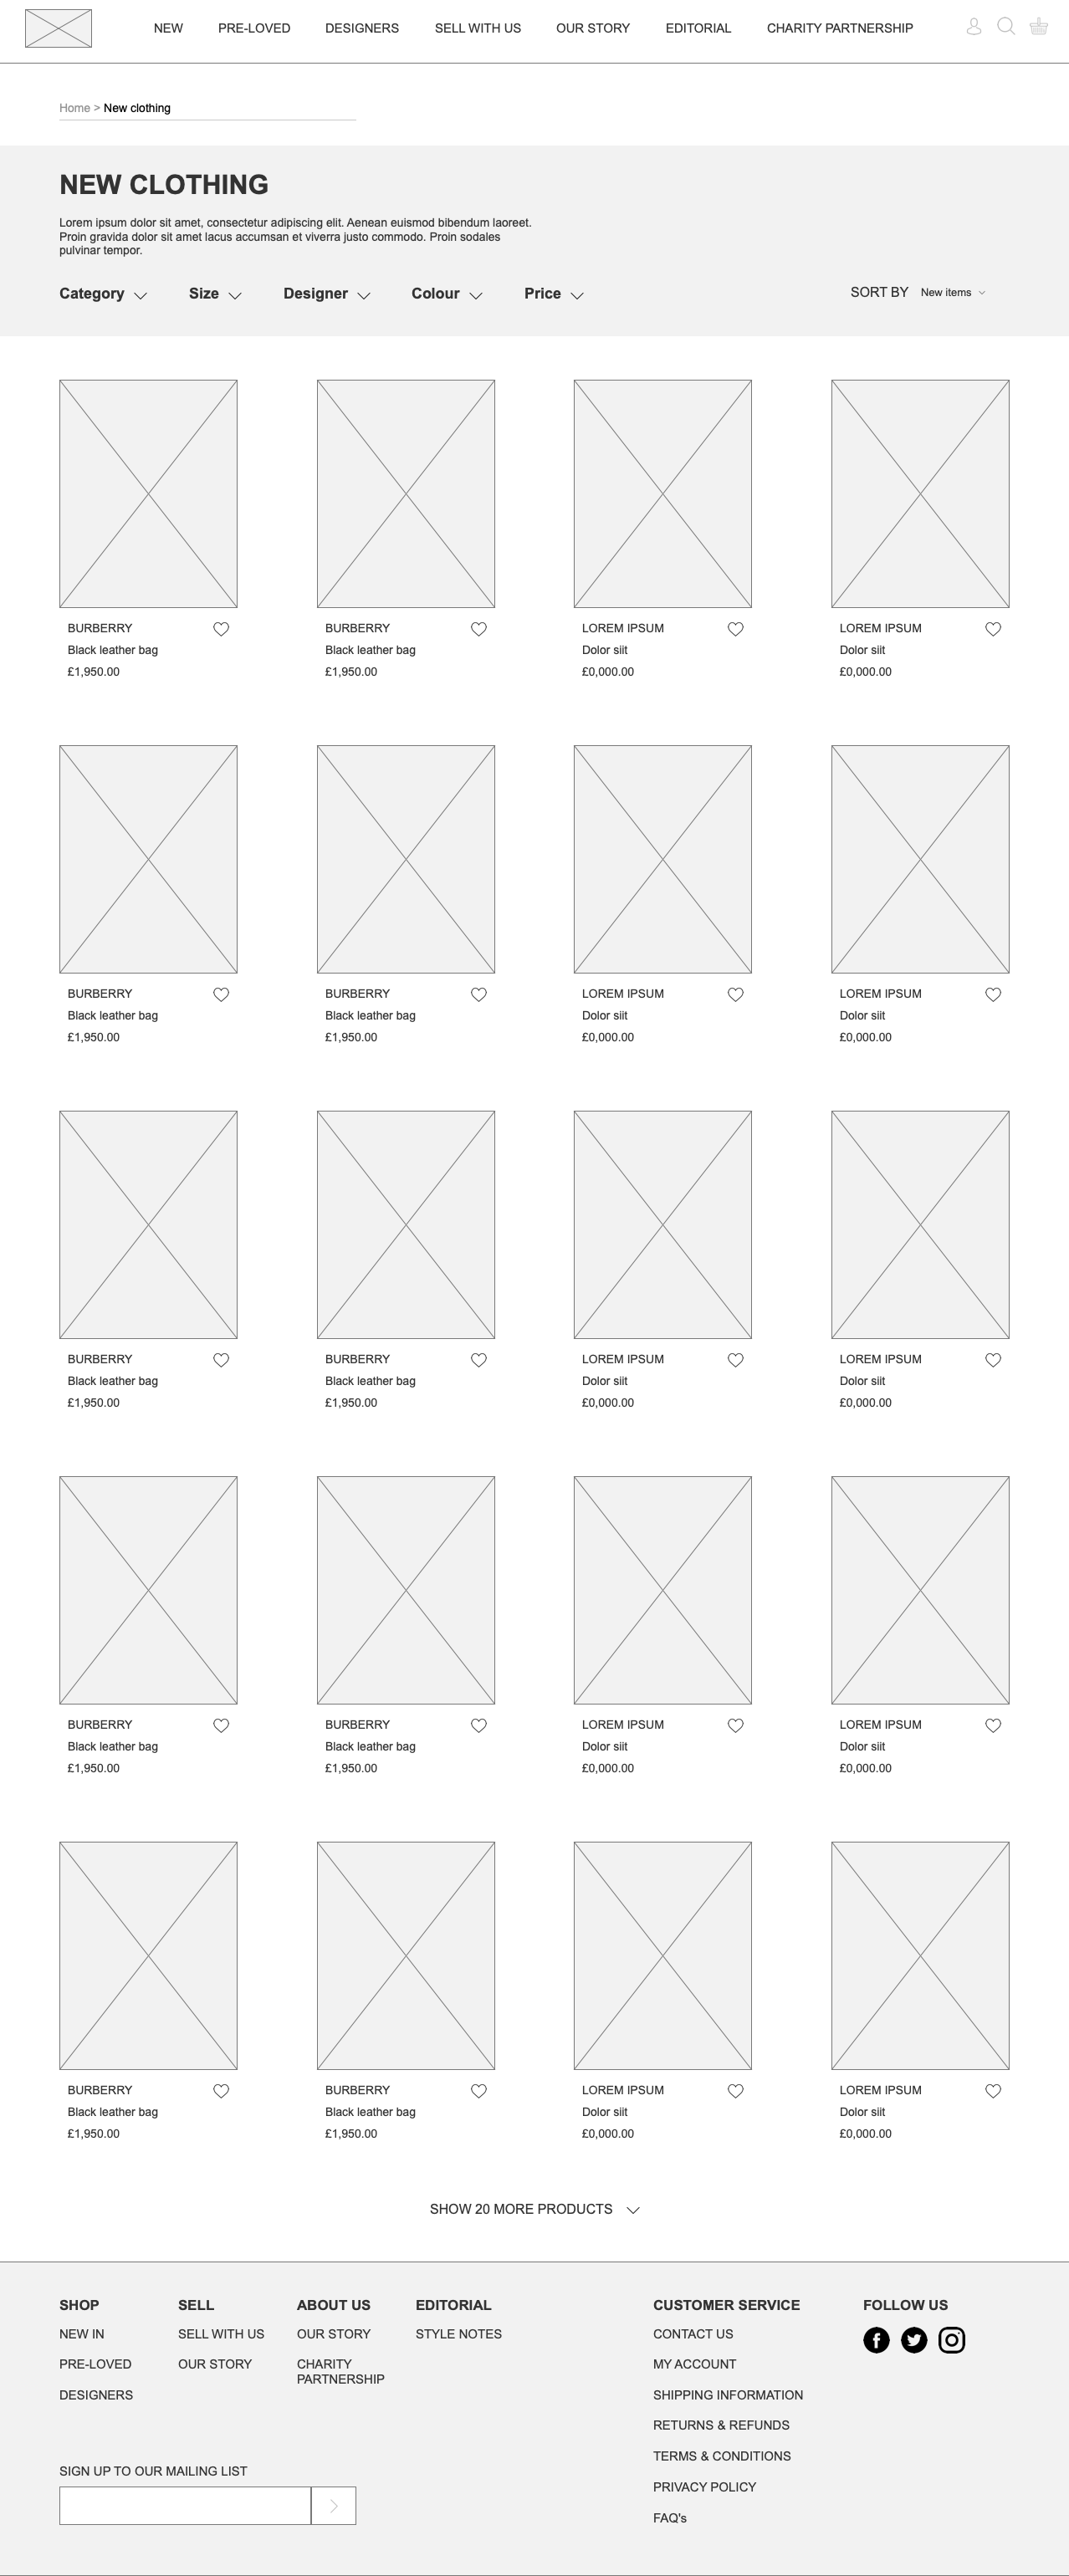 products_landing_-_new wireframe.png